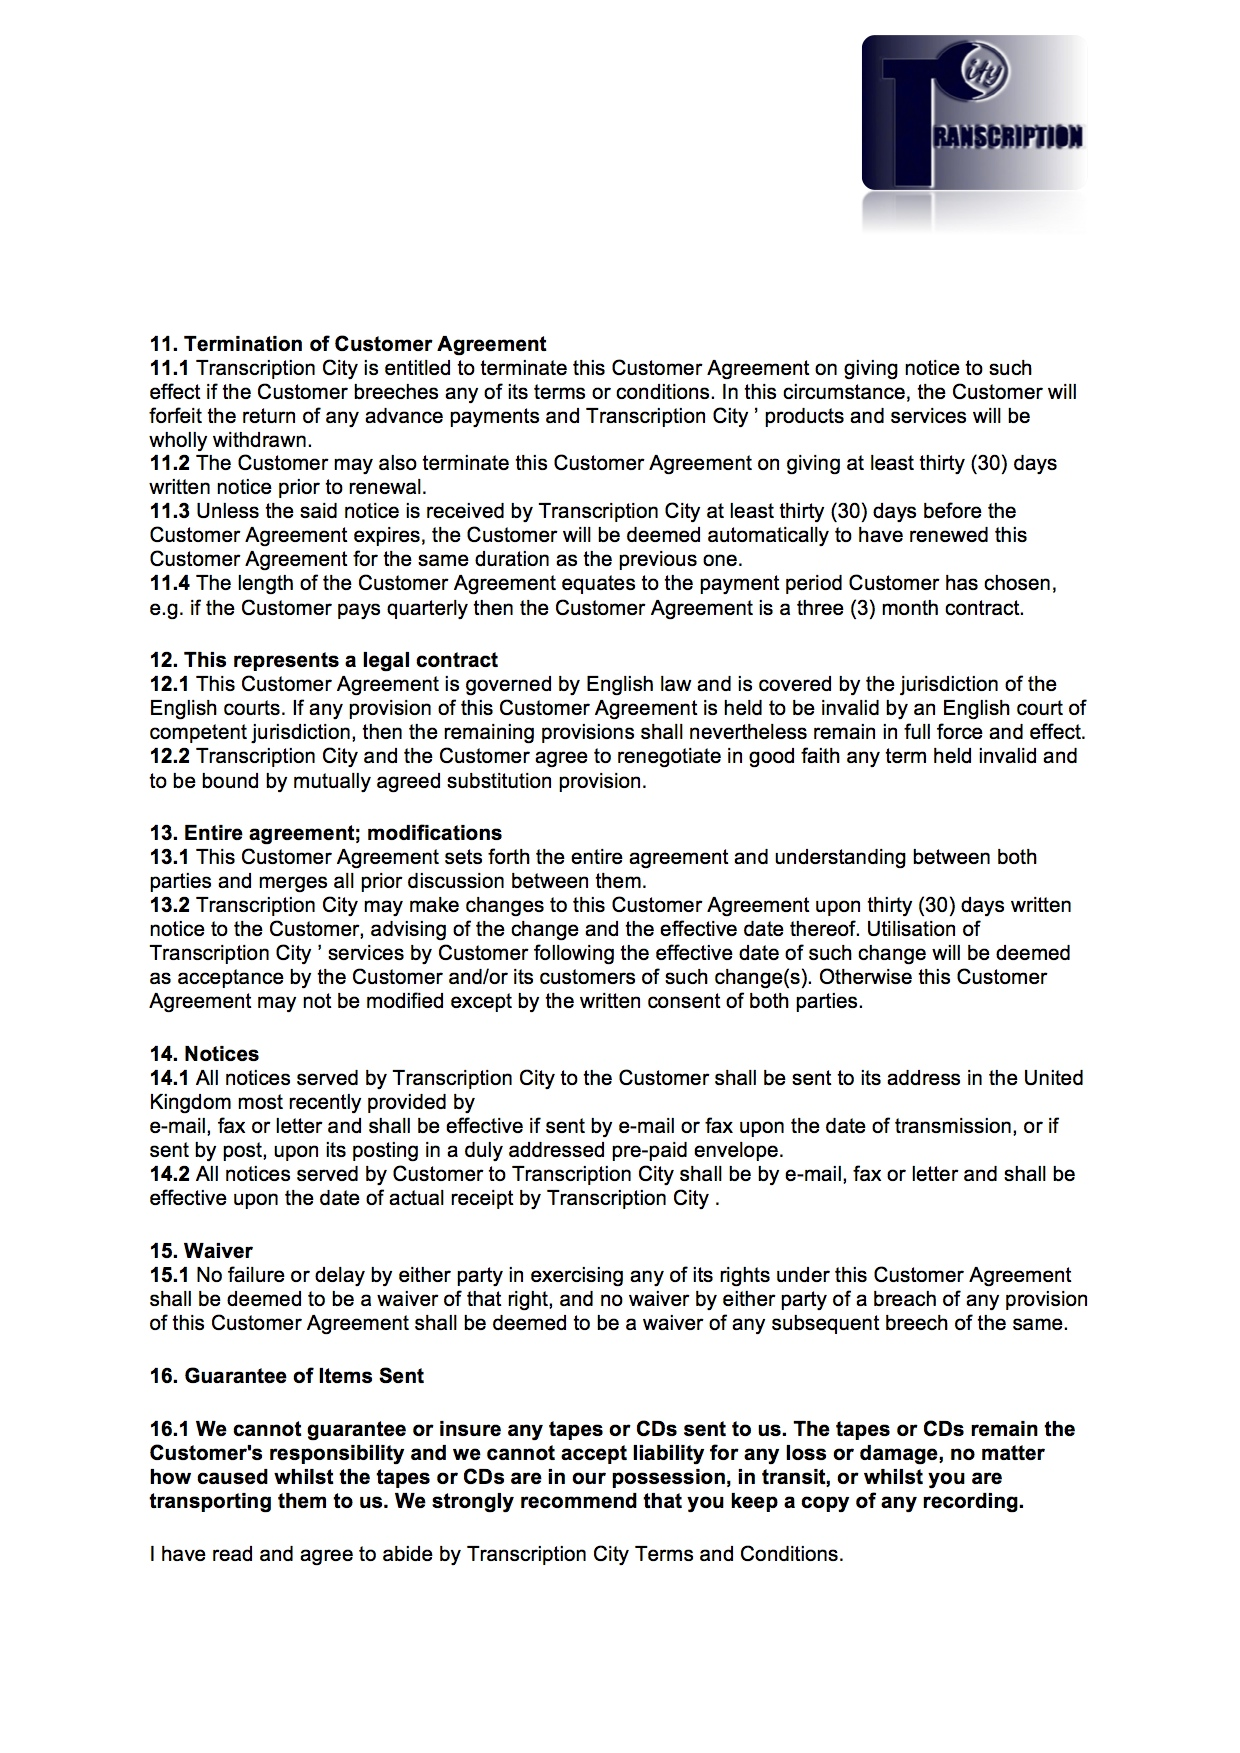 Terms and Conditions page 4